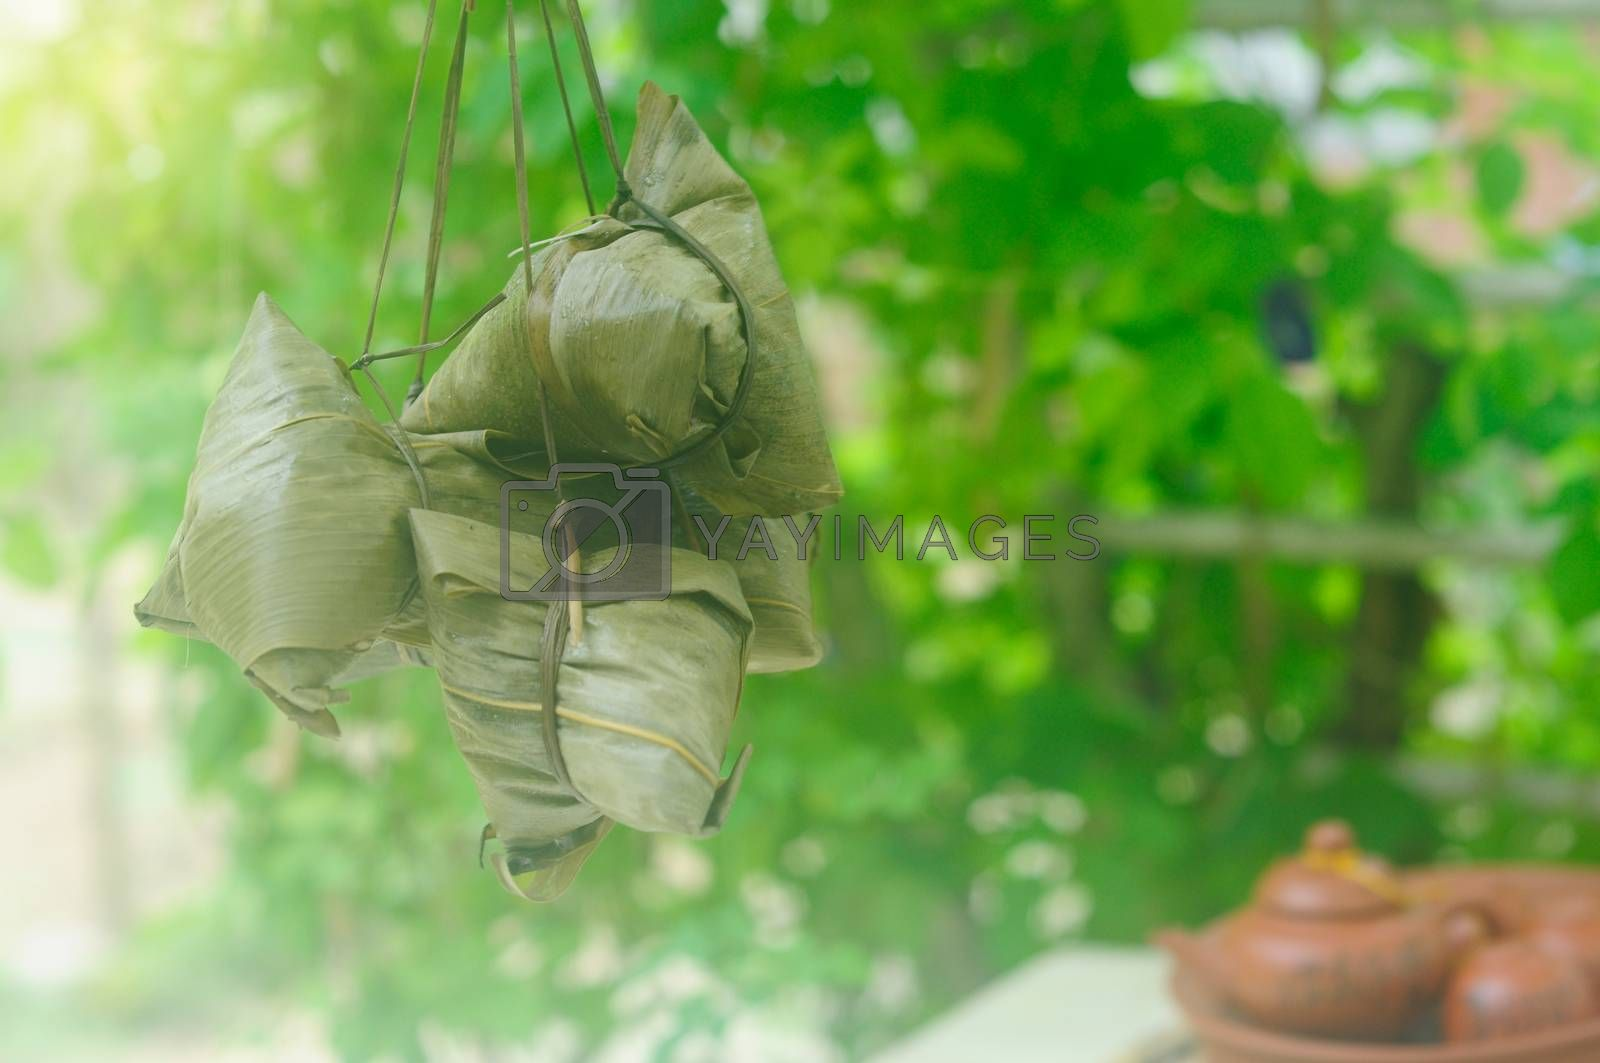 Chinese tradition food - Chinese Steamed Rice Dumpling  with bokeh background outdoor.Zongzi or traditional chinese sticky rice dumpling usually taken during festival occasion.